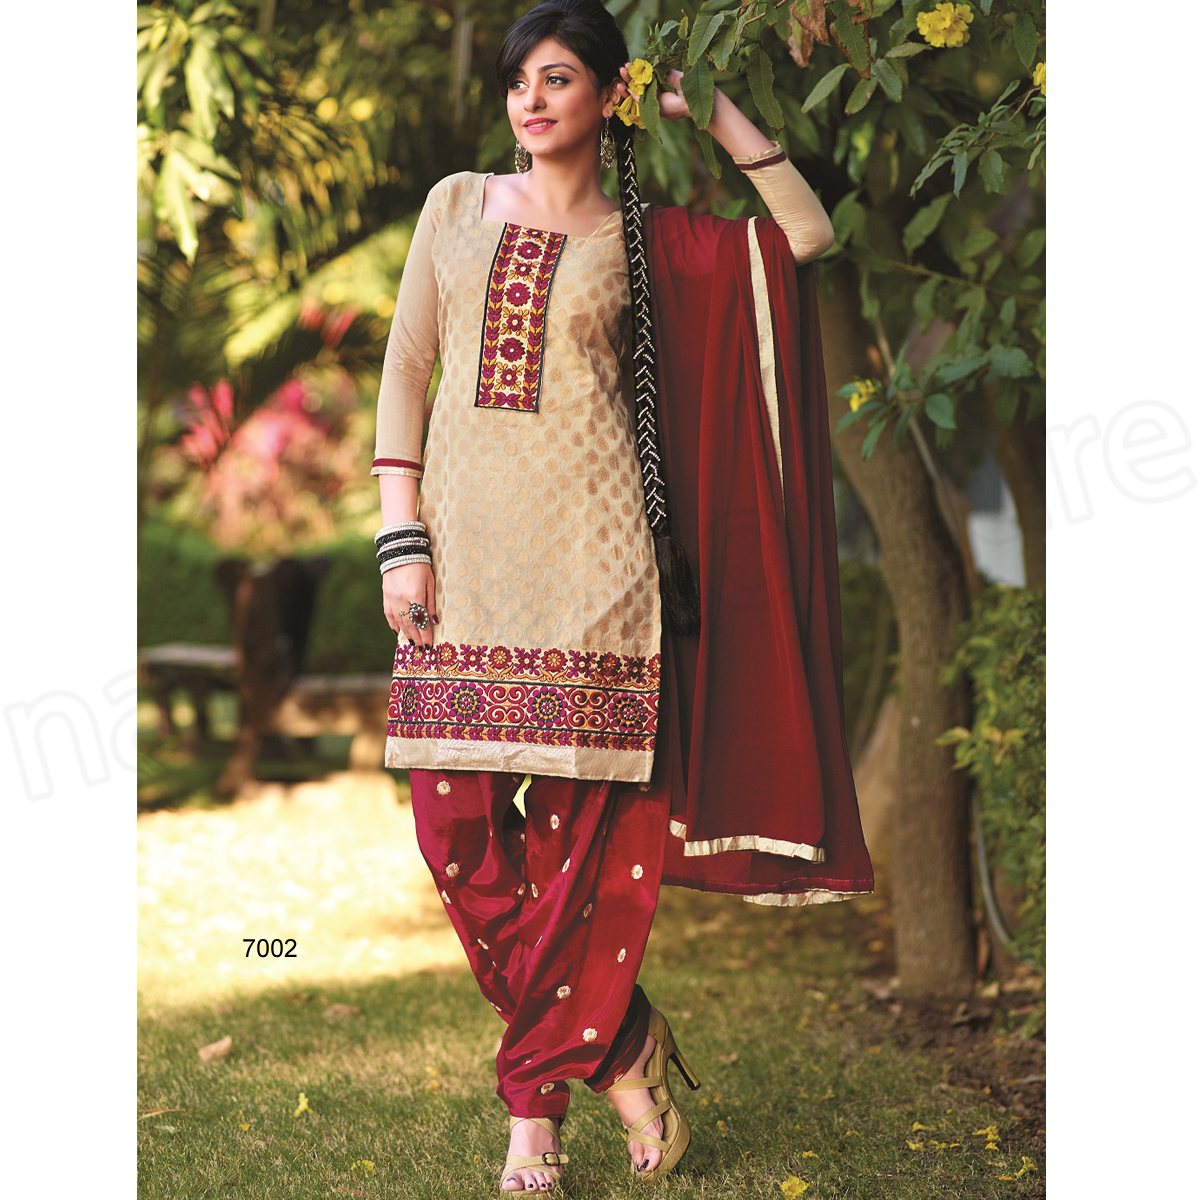 Latest Indian Patiala shalwar kameez fashion 2015-2016 (9)